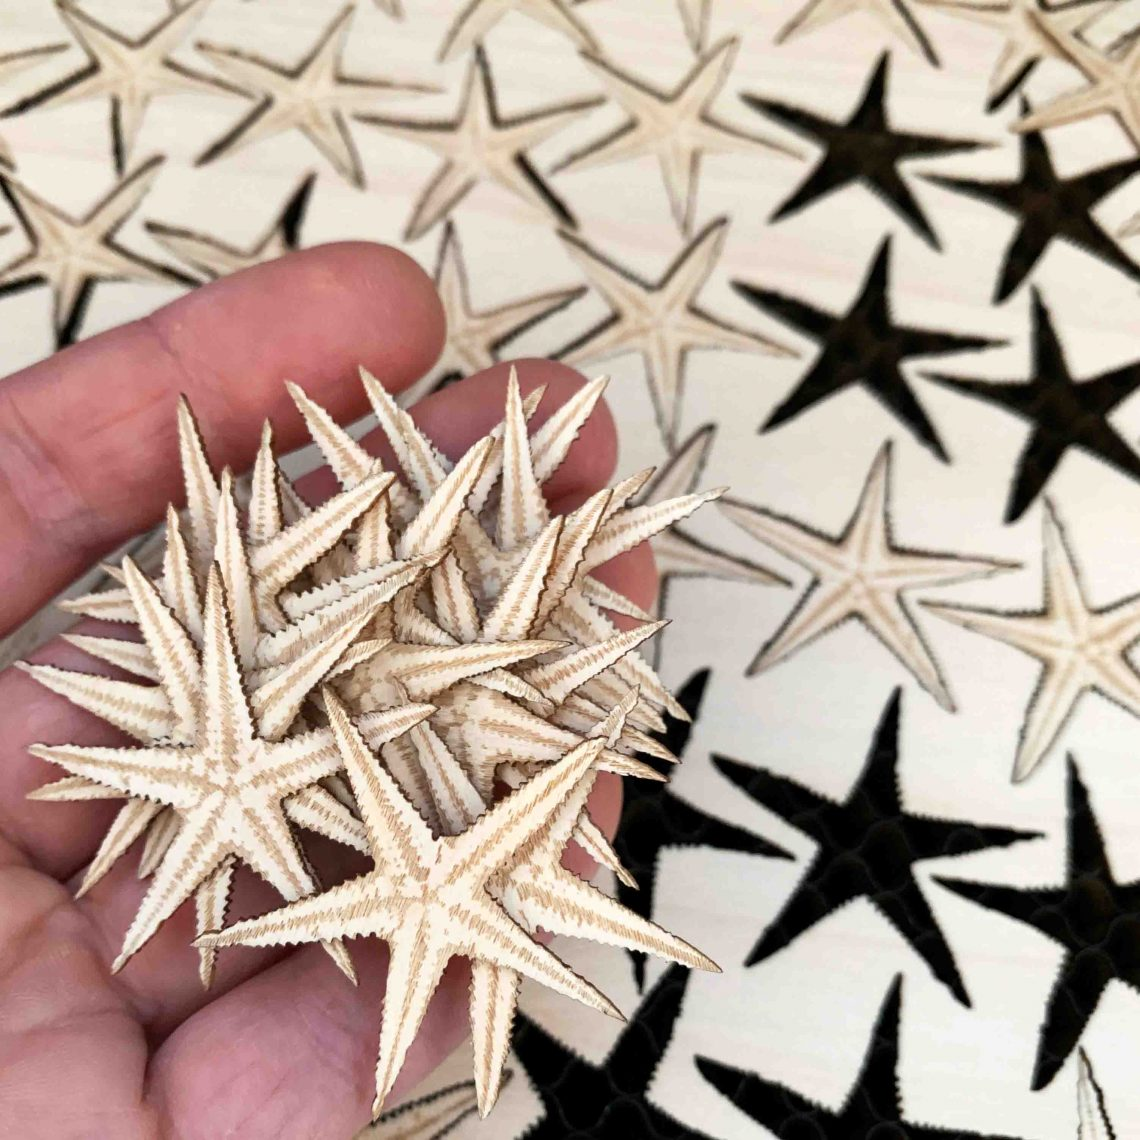 Wooden Starfish made by PaperStudio